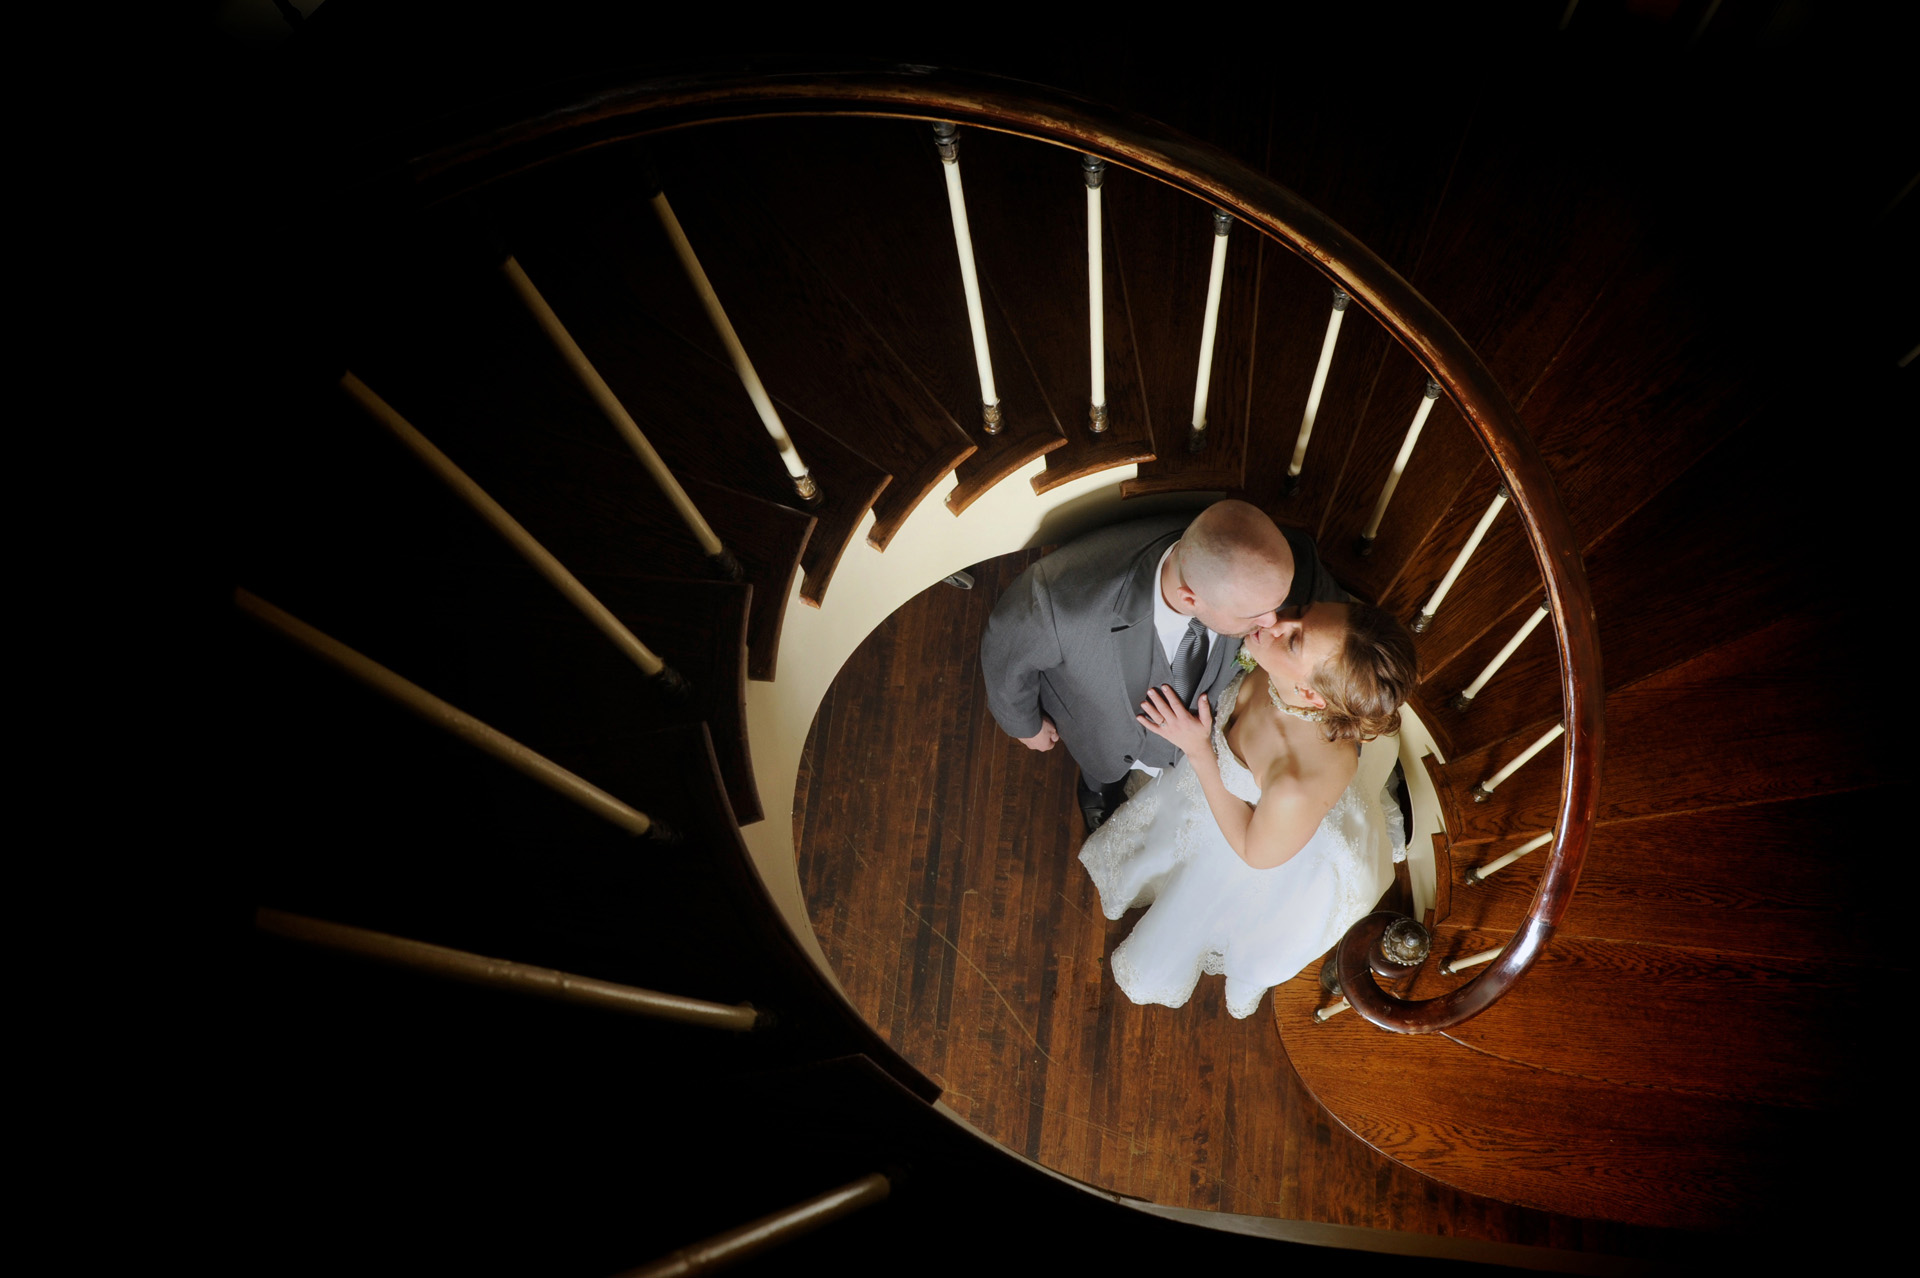 Detroit, Michigan wedding photographer's photo of the wedding couple at the bottom of the stairs at the Colony Club.